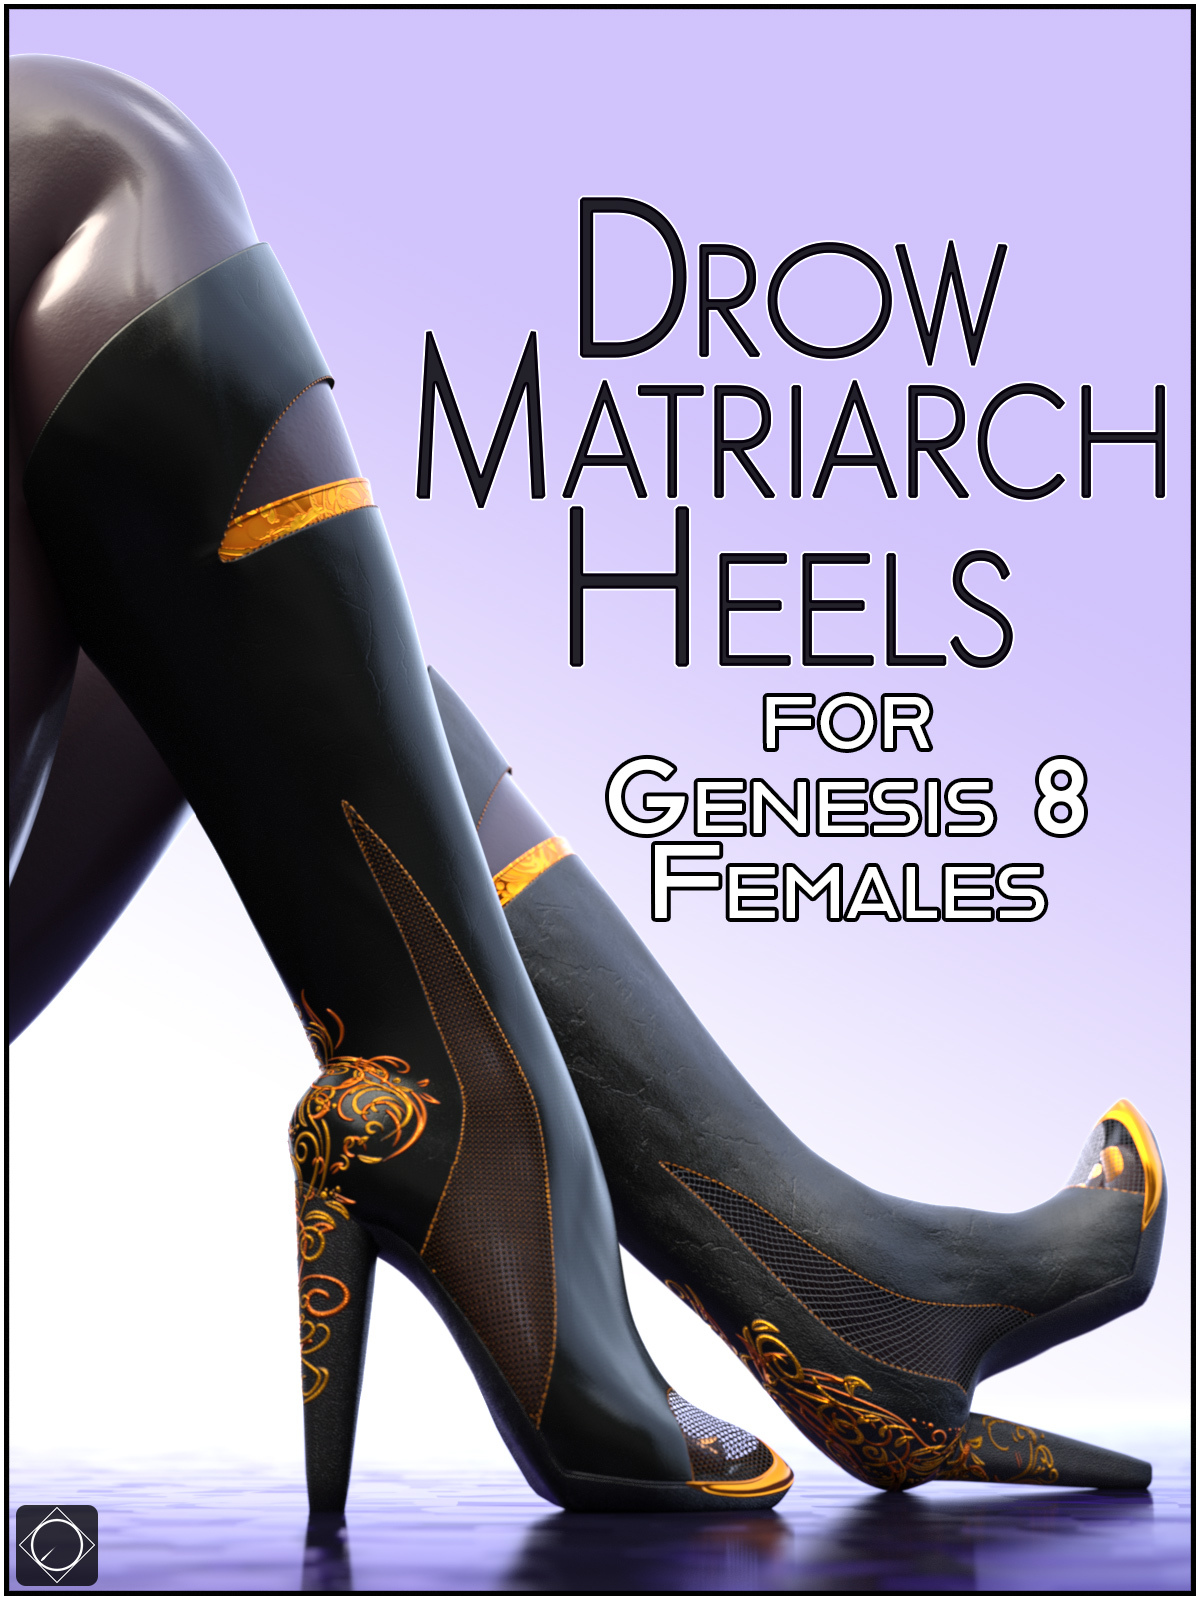 Drow Matriarch Heels for Genesis 8 Females